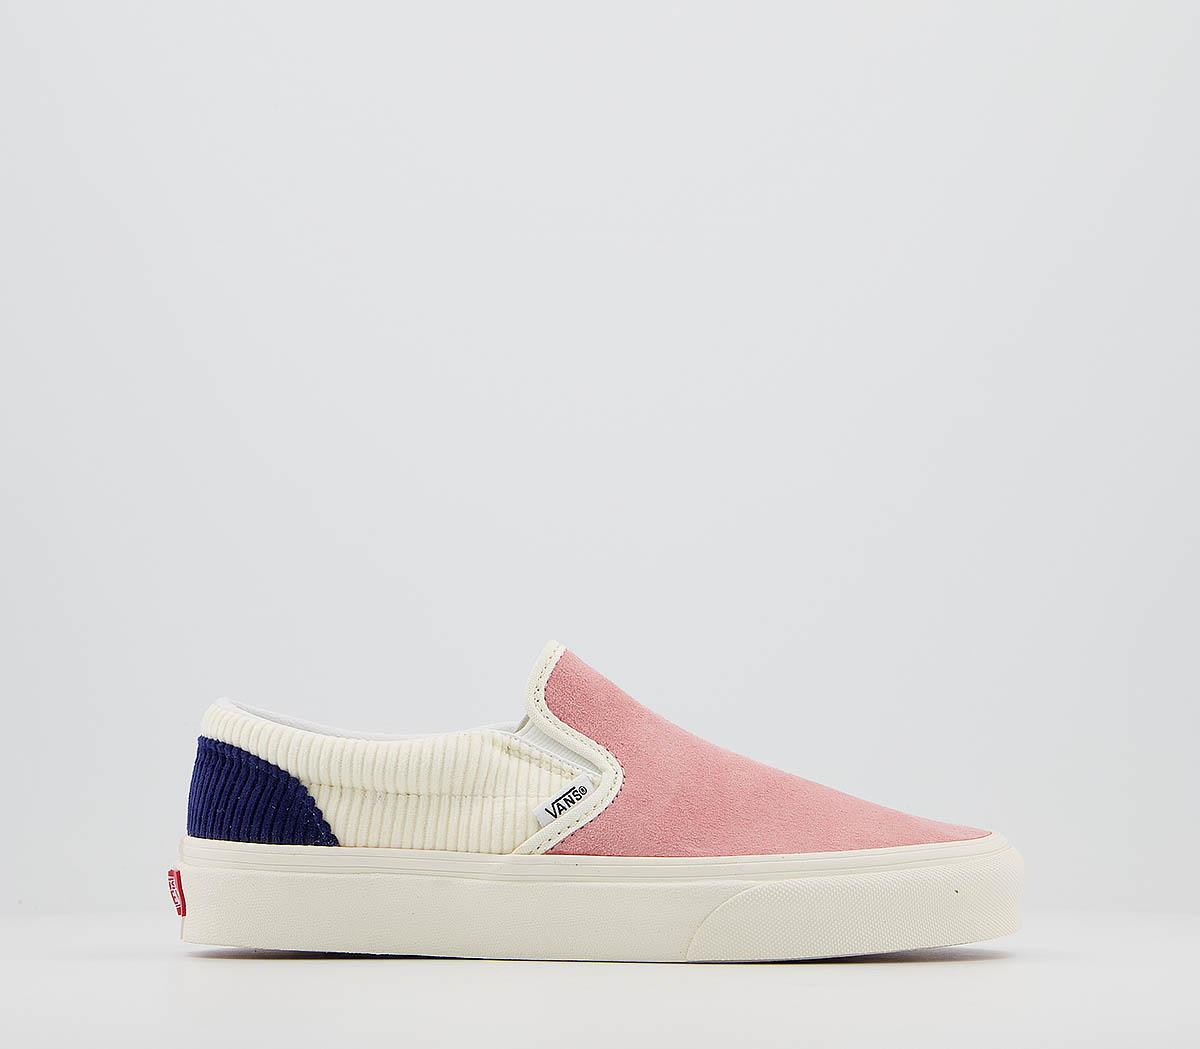 Vans Classic Skip On Pink Icing Whisper White Blueprint Cord Trainers